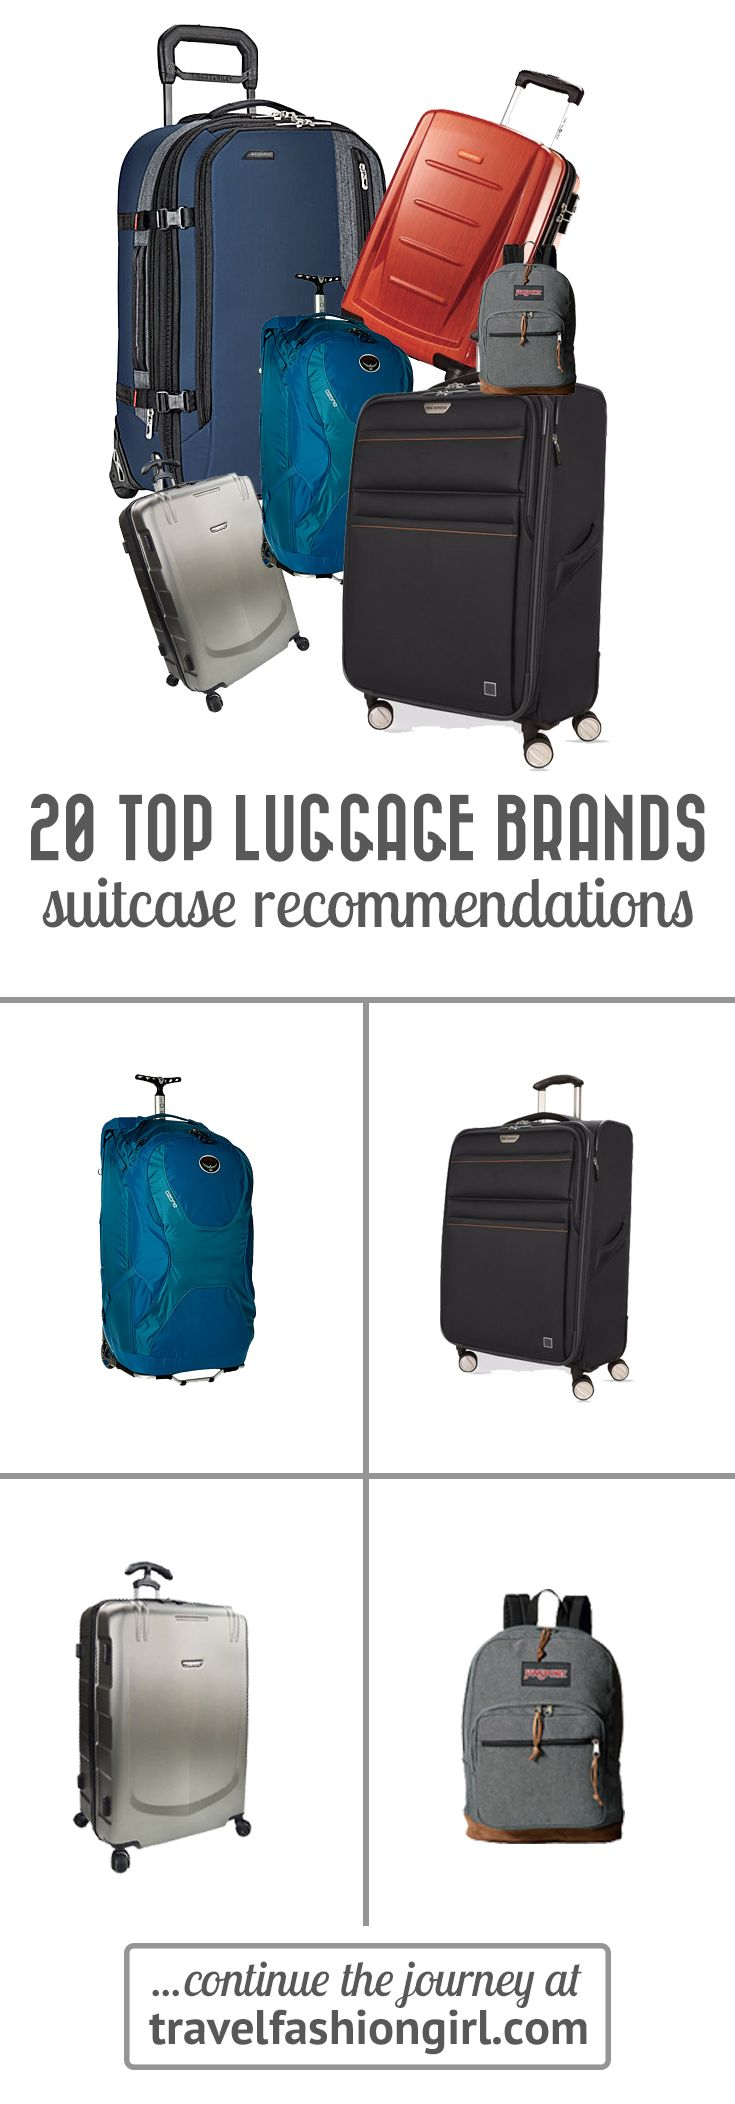 17 Best ideas about Luggage Brands on Pinterest | Best luggage ...